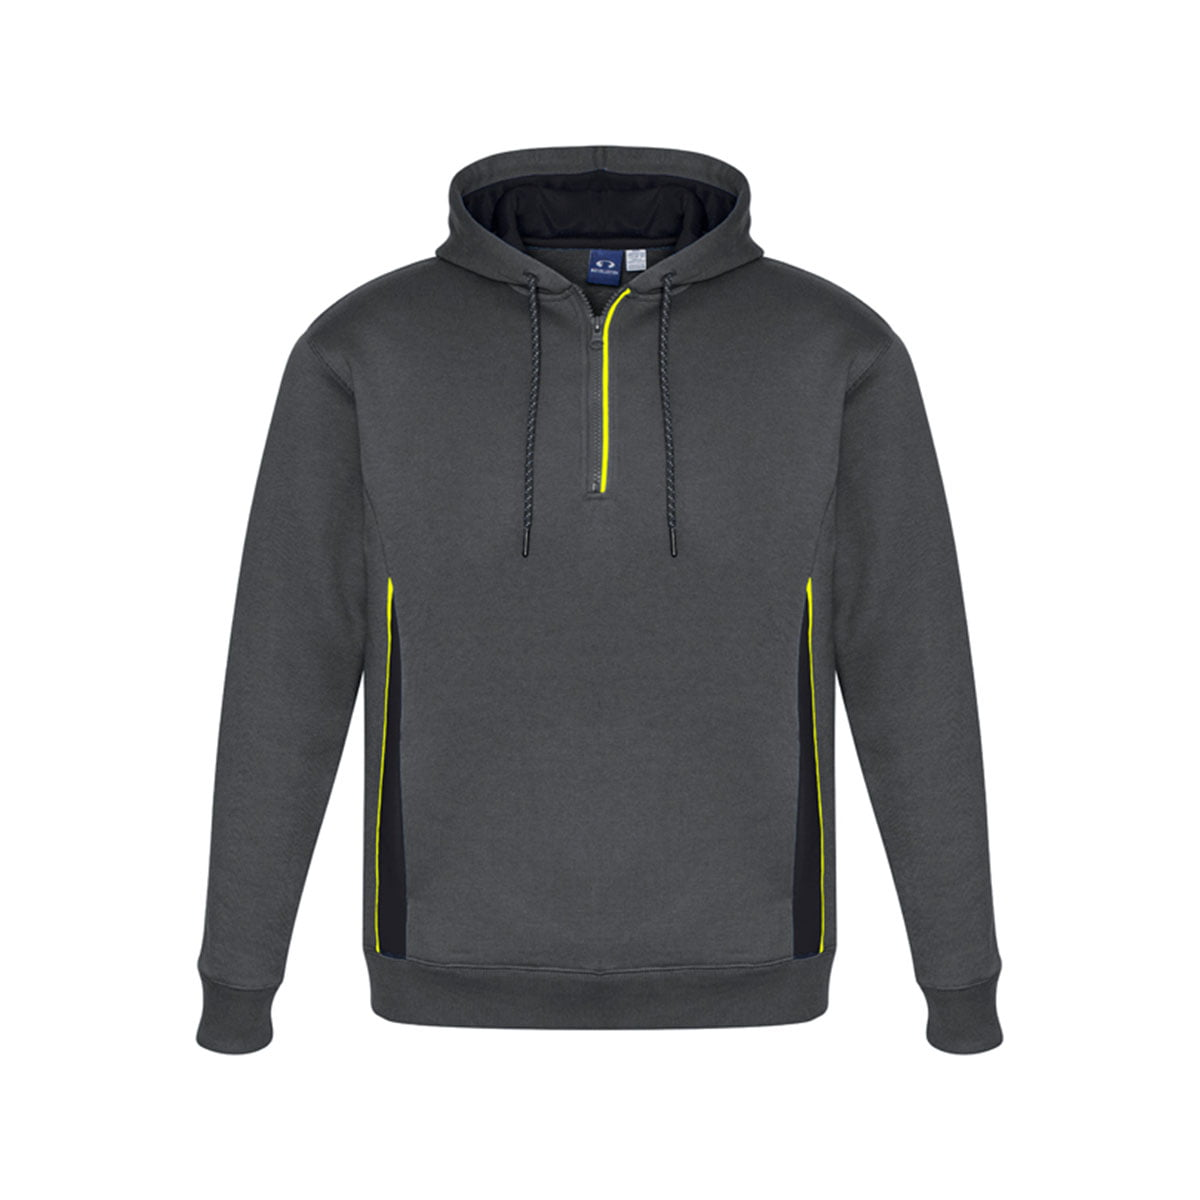 Adults Renegade Hoodie-Grey / Black / Fluoro Yellow